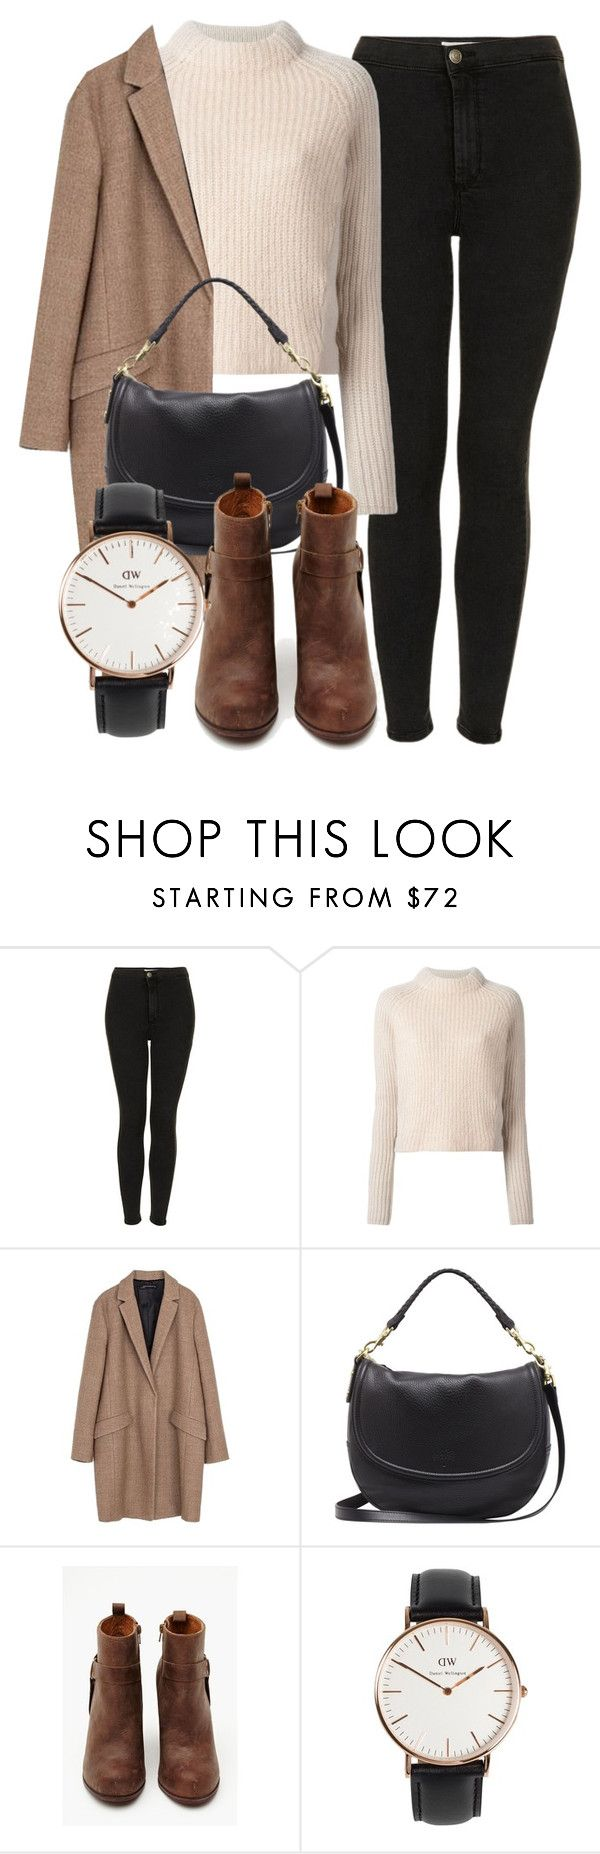 """""""Untitled #5084"""" by laurenmboot ❤ liked on Polyvore featuring Topshop, Acne Studios, Zara, Mulberry, Jeffrey Campbell, Daniel Wellington, women's clothing, women's fashion, women and female"""